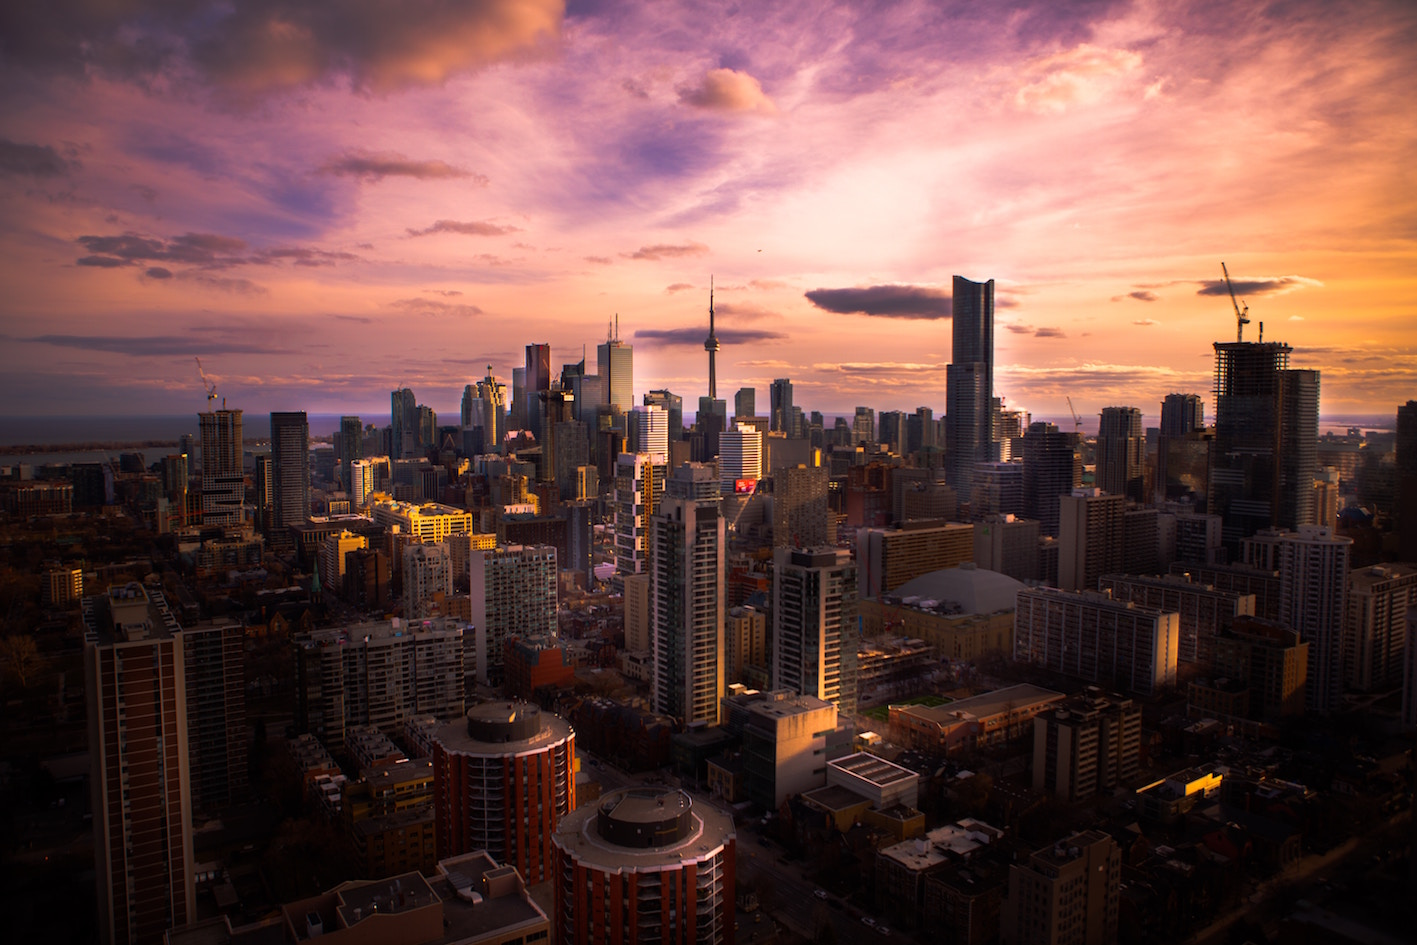 sunset of toronto's skyline